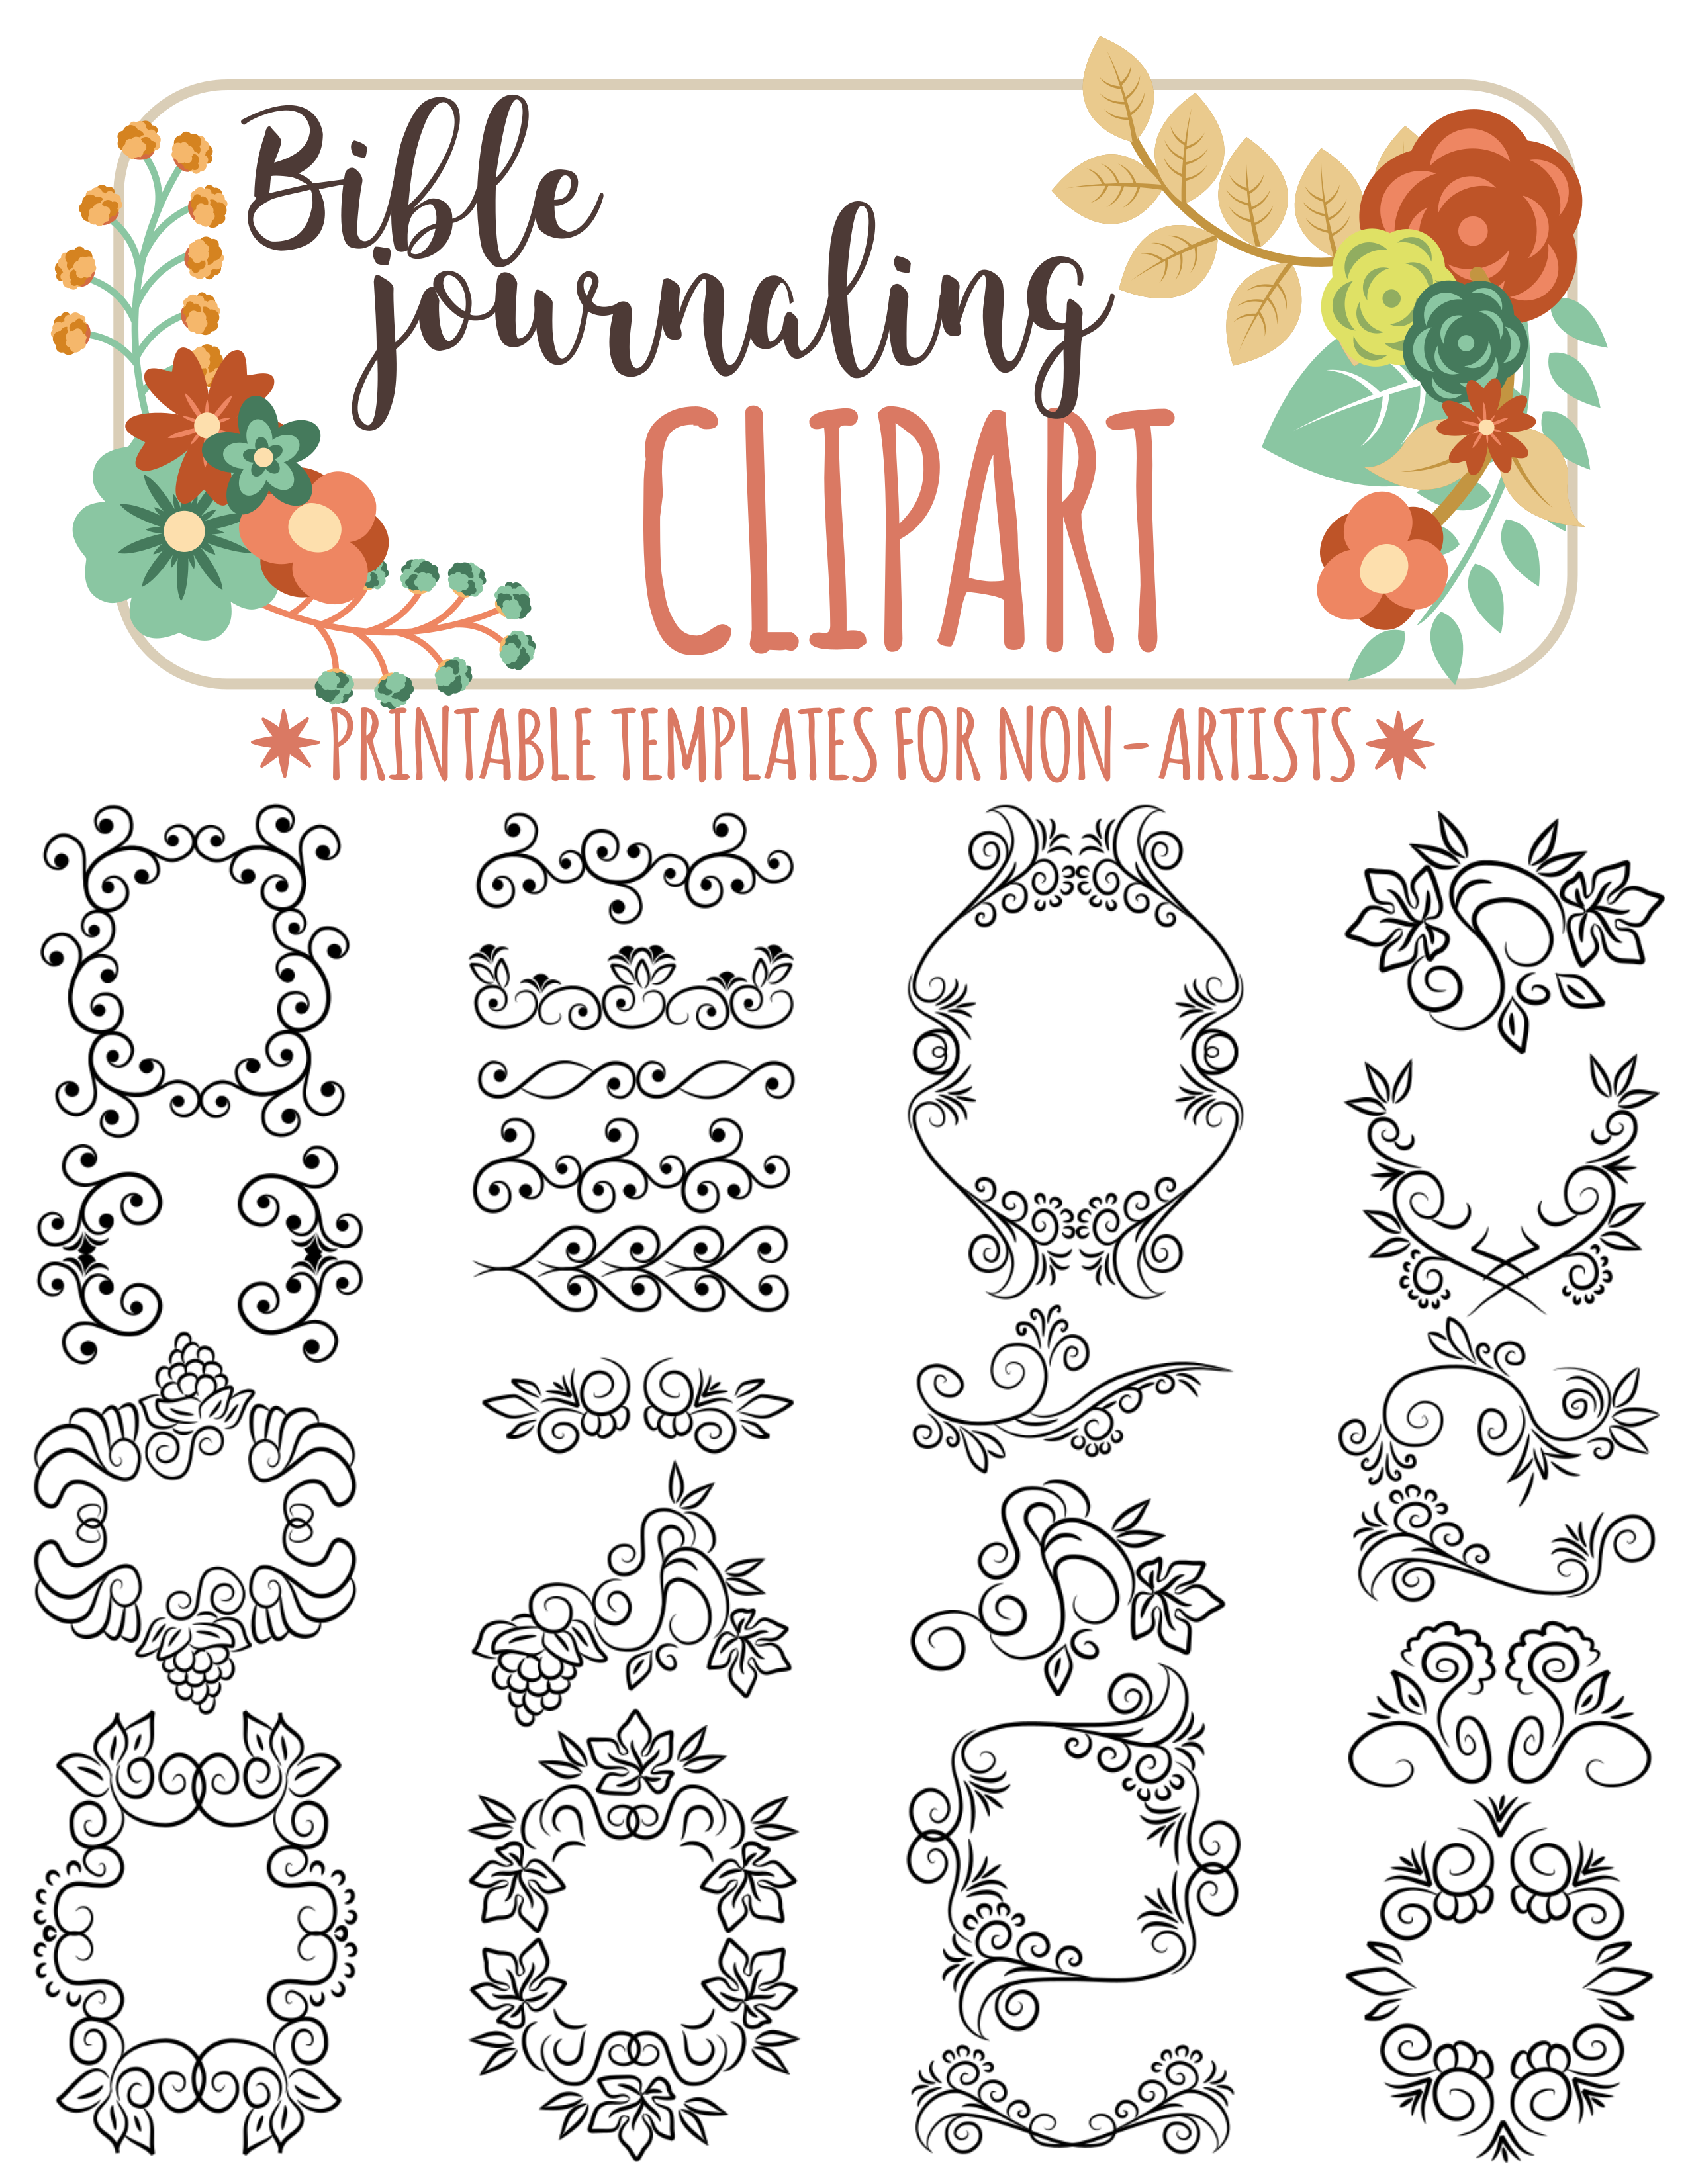 printable templates for bible journaling verse art illustrated